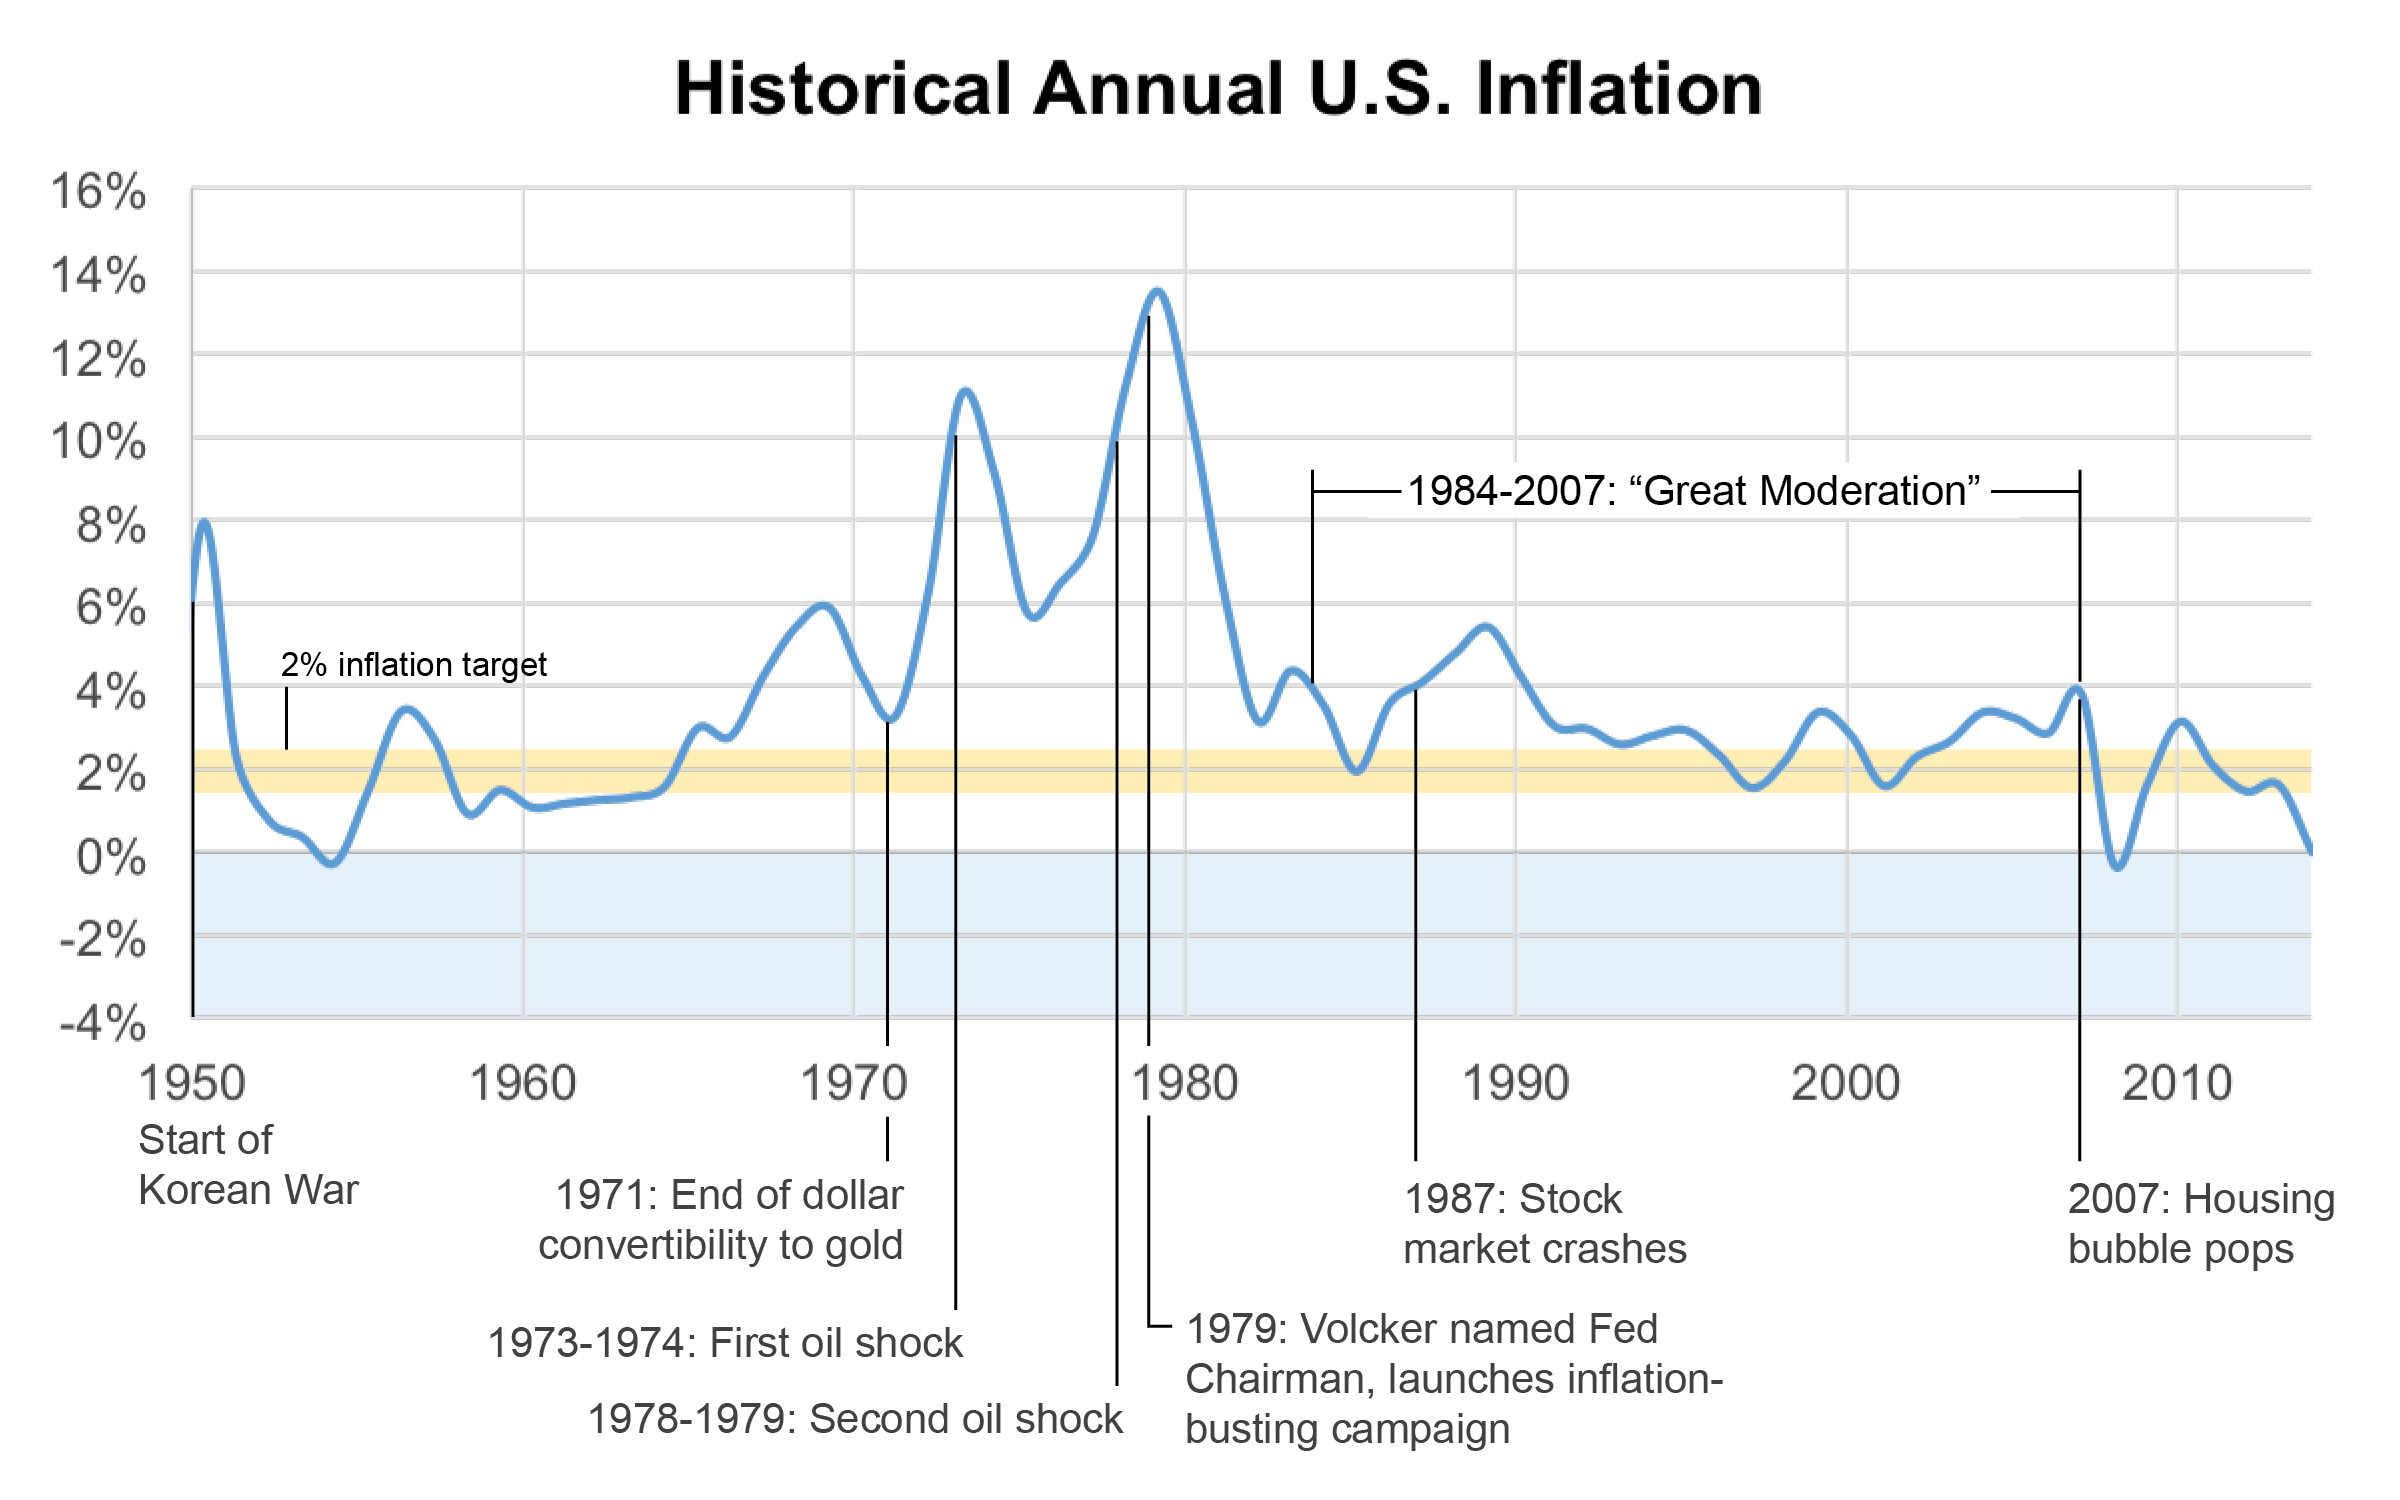 Historical Annual U.S. Inflation